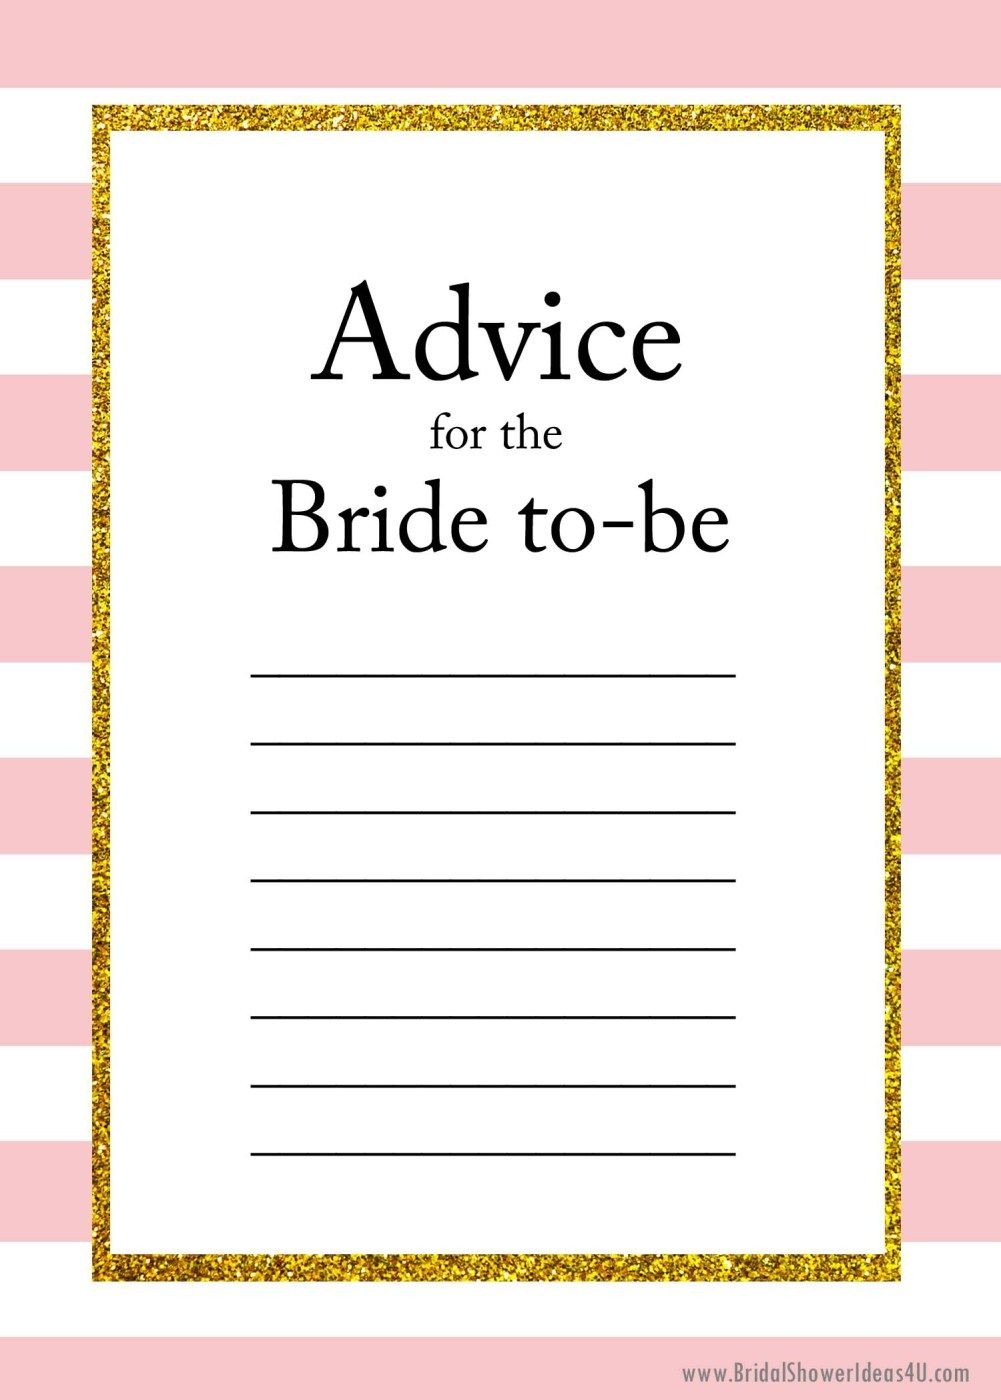 graphic about Printable Bridal Shower Cards titled Free of charge Printable Information for the Bride In direction of Be Playing cards favours